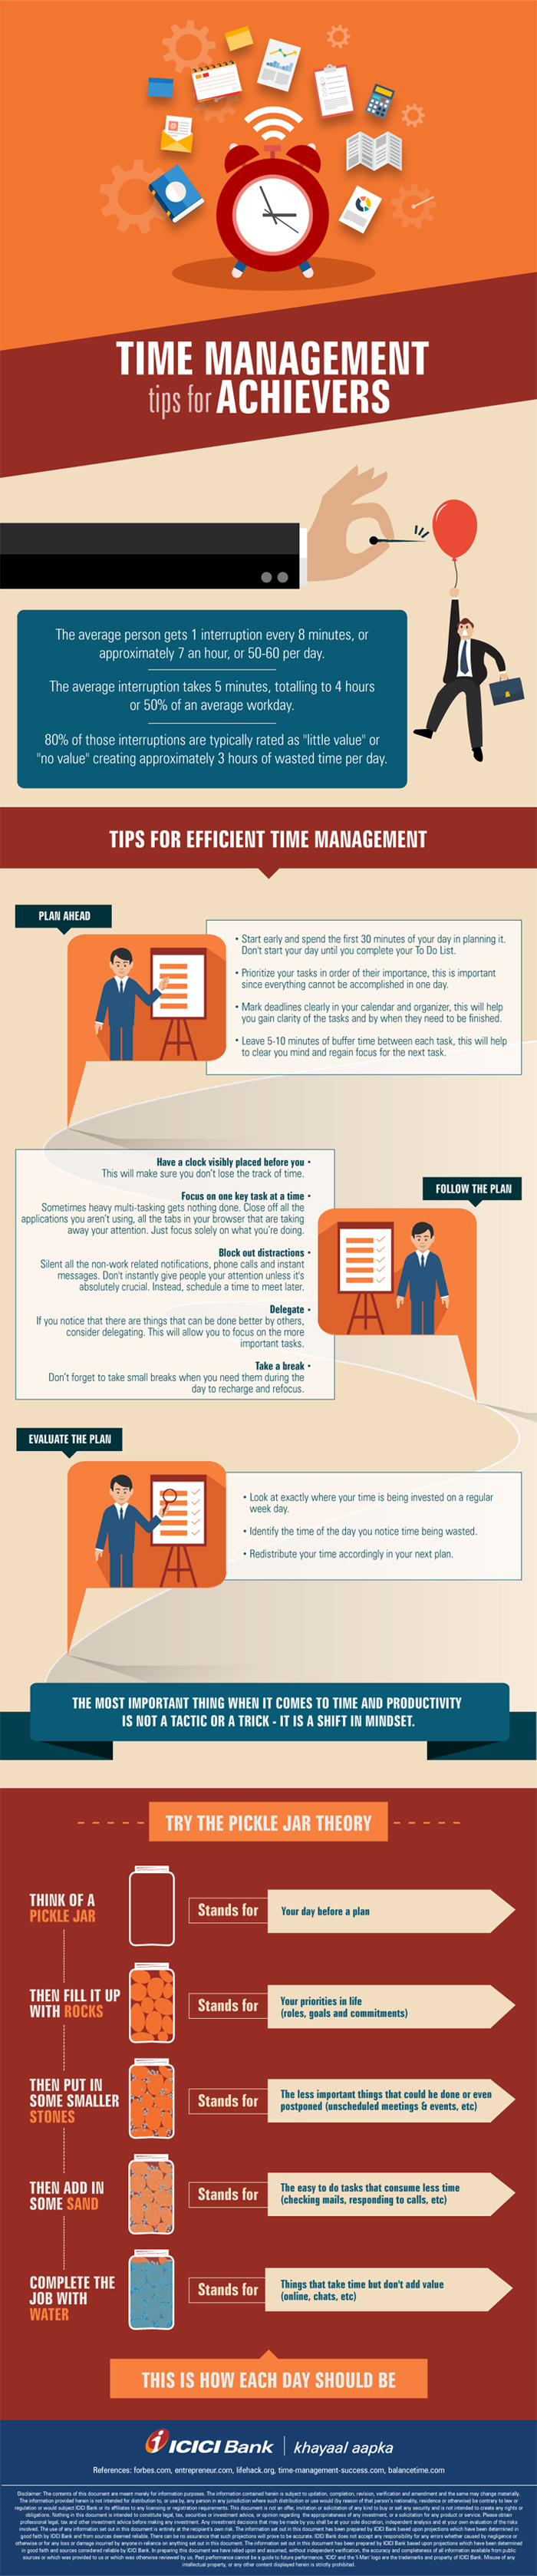 Infographic on Time Management Tips for Achievers